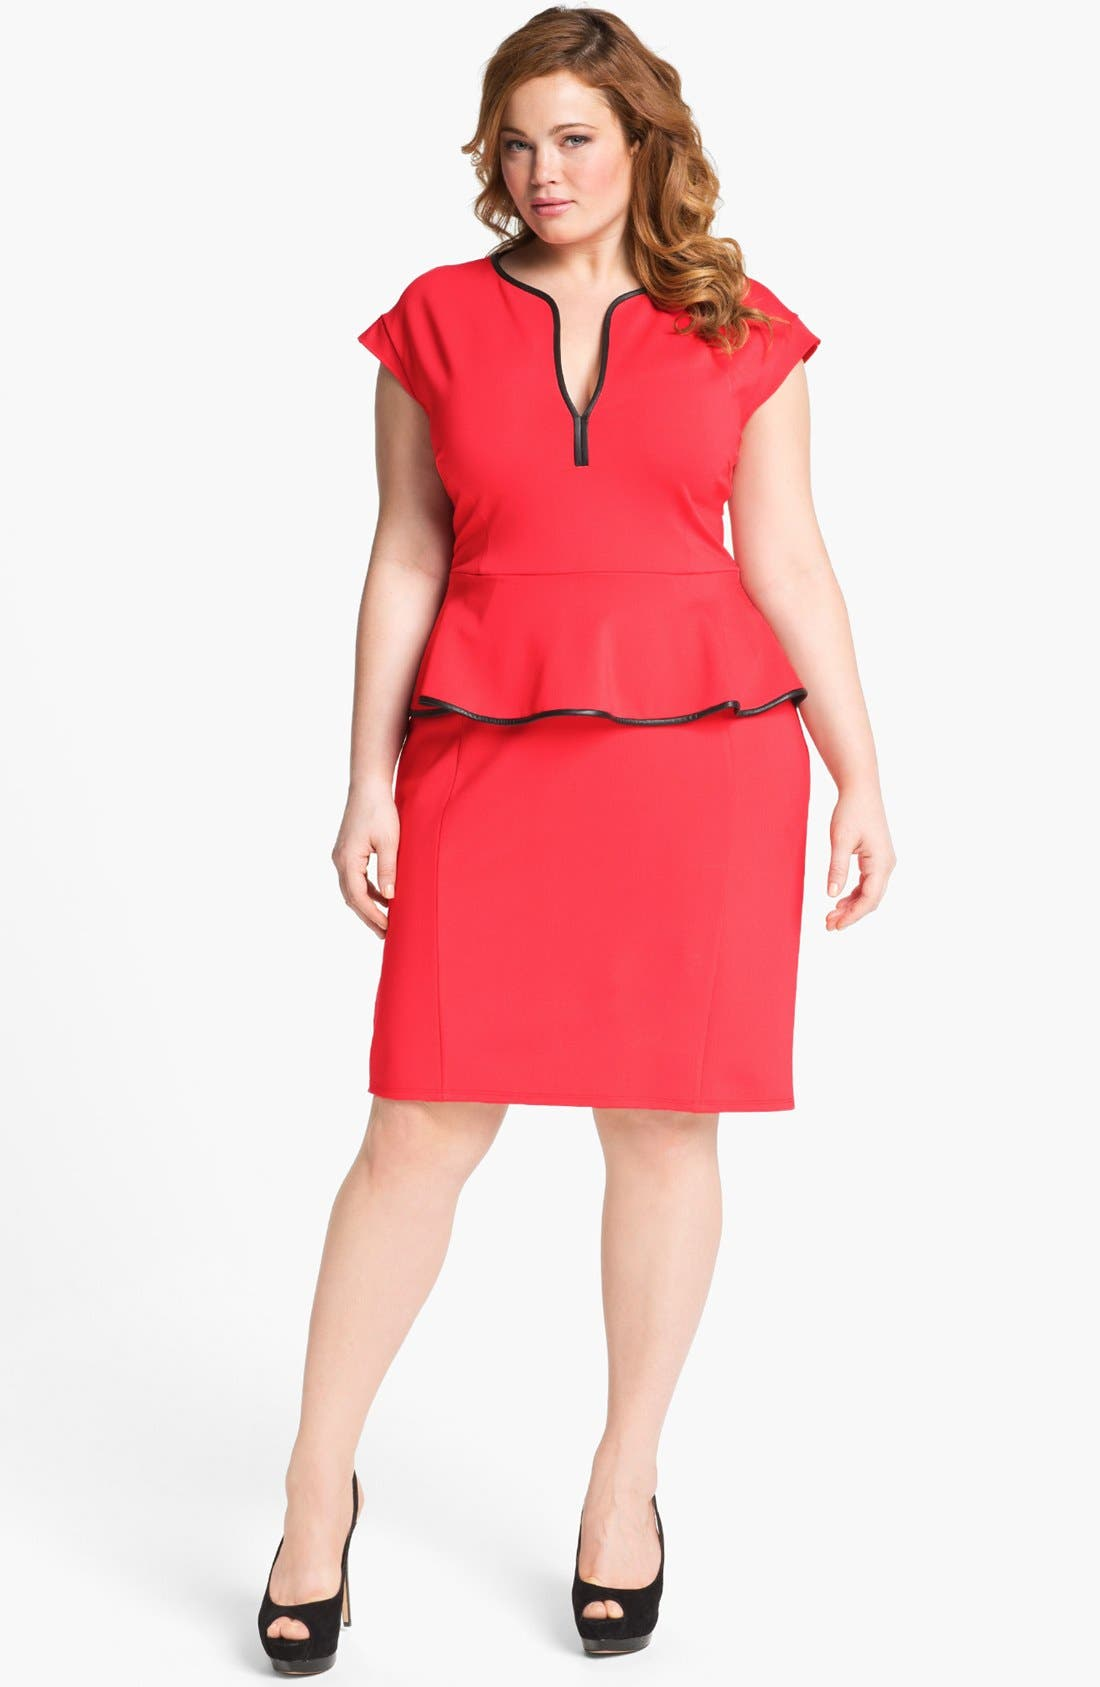 Alternate Image 1 Selected - ABS by Allen Schwartz Leather Trim Peplum Dress (Plus Size)